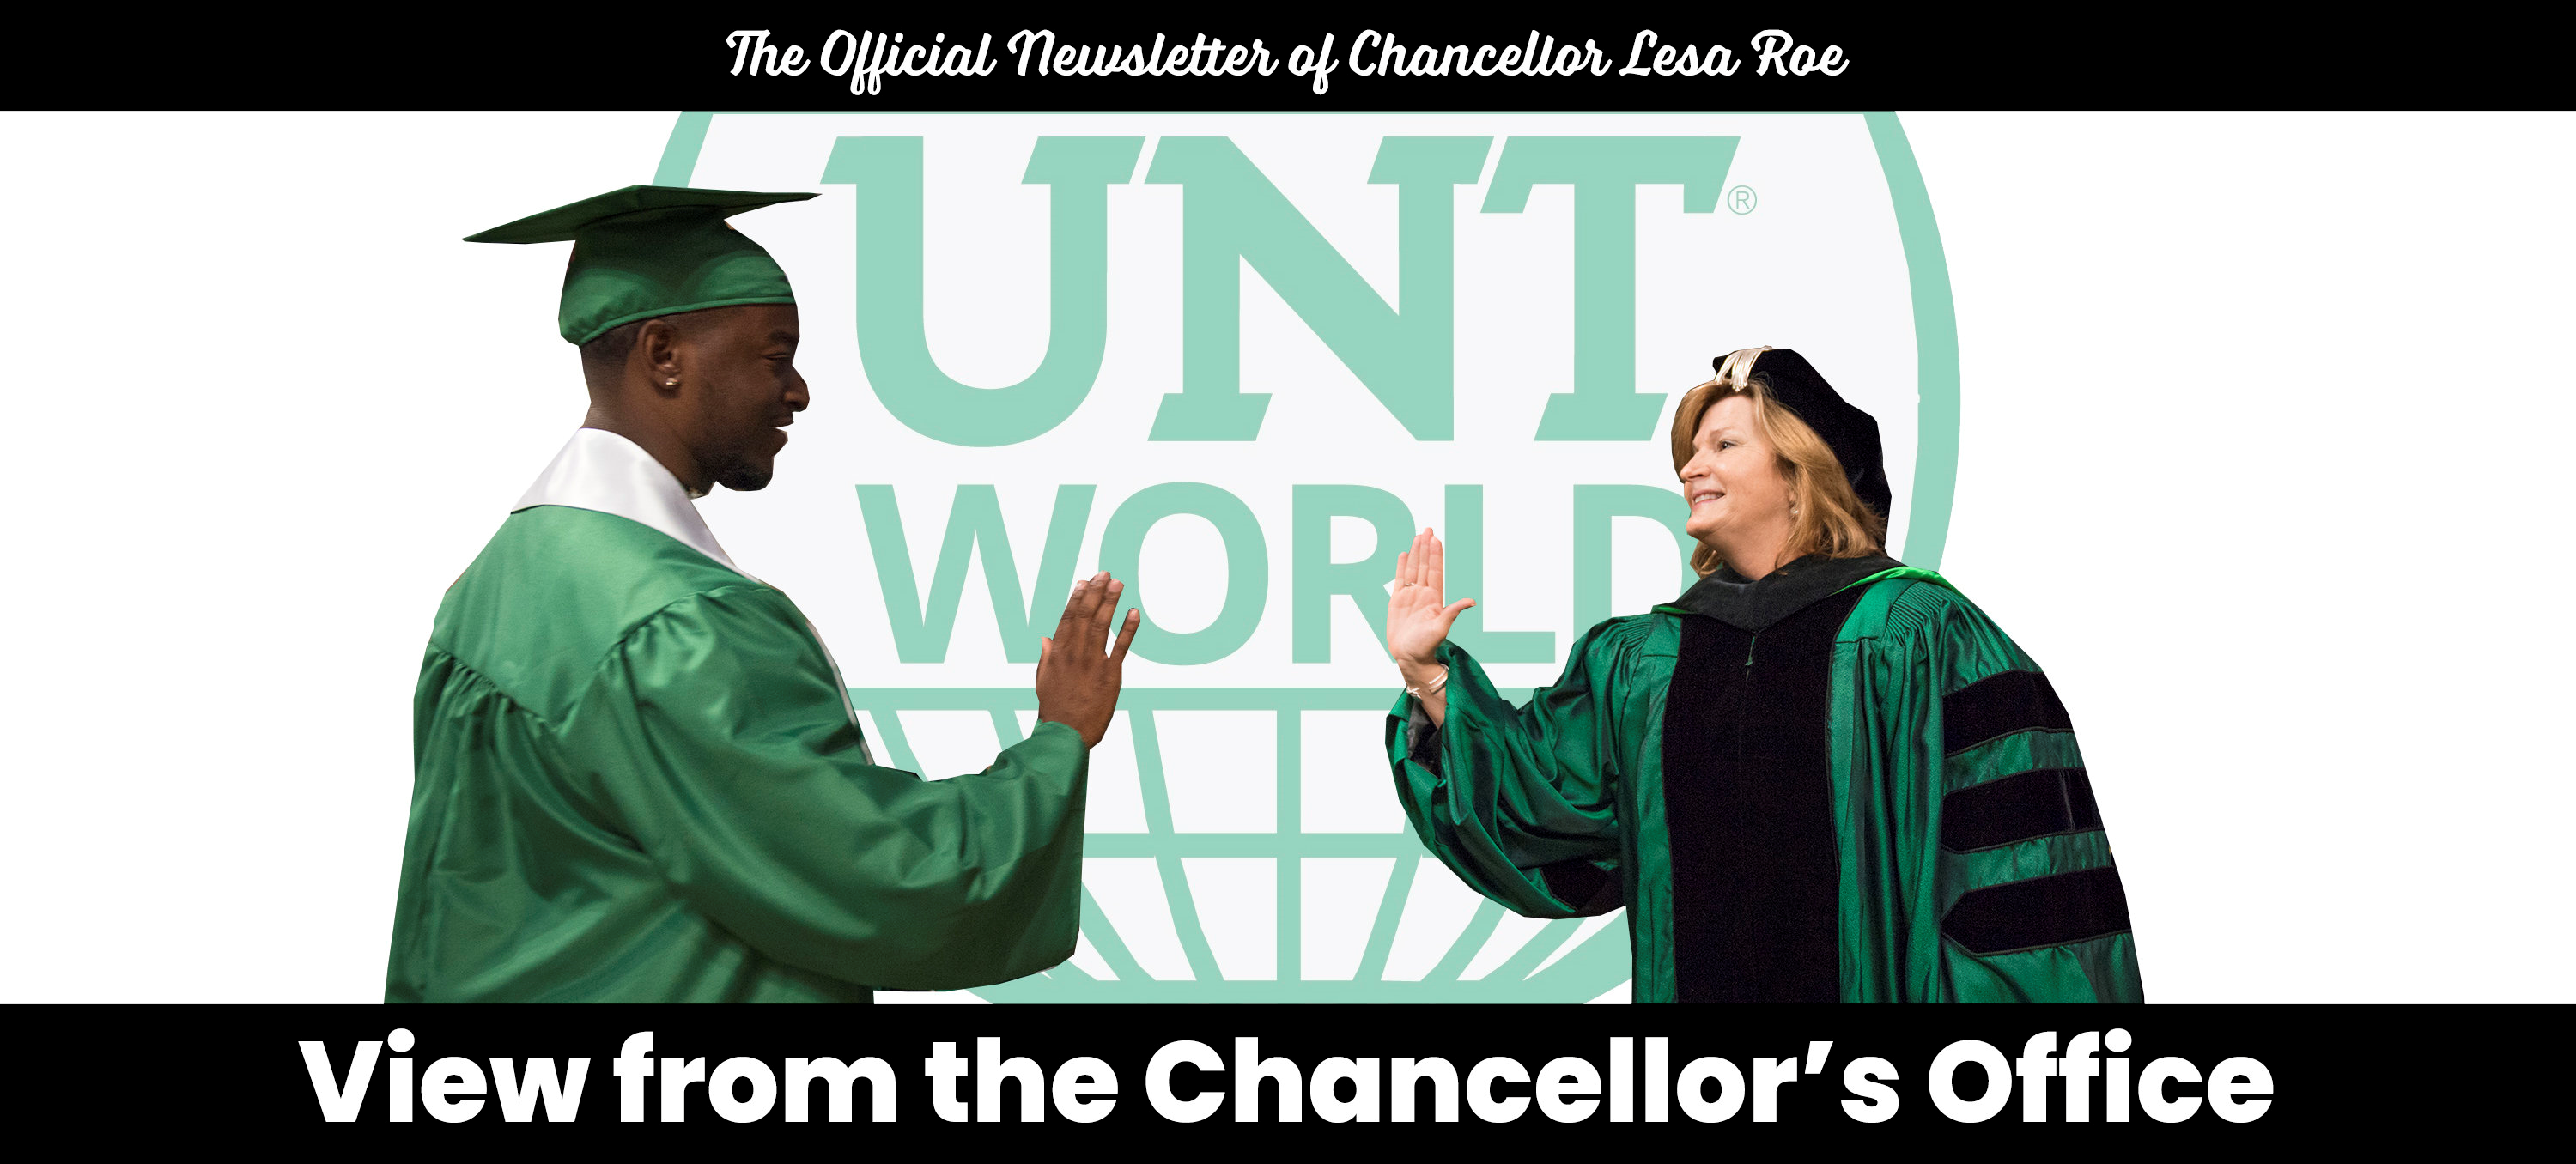 The Official Newsletter of Chancellor Lesa Roe: View from the Chancellor's Office